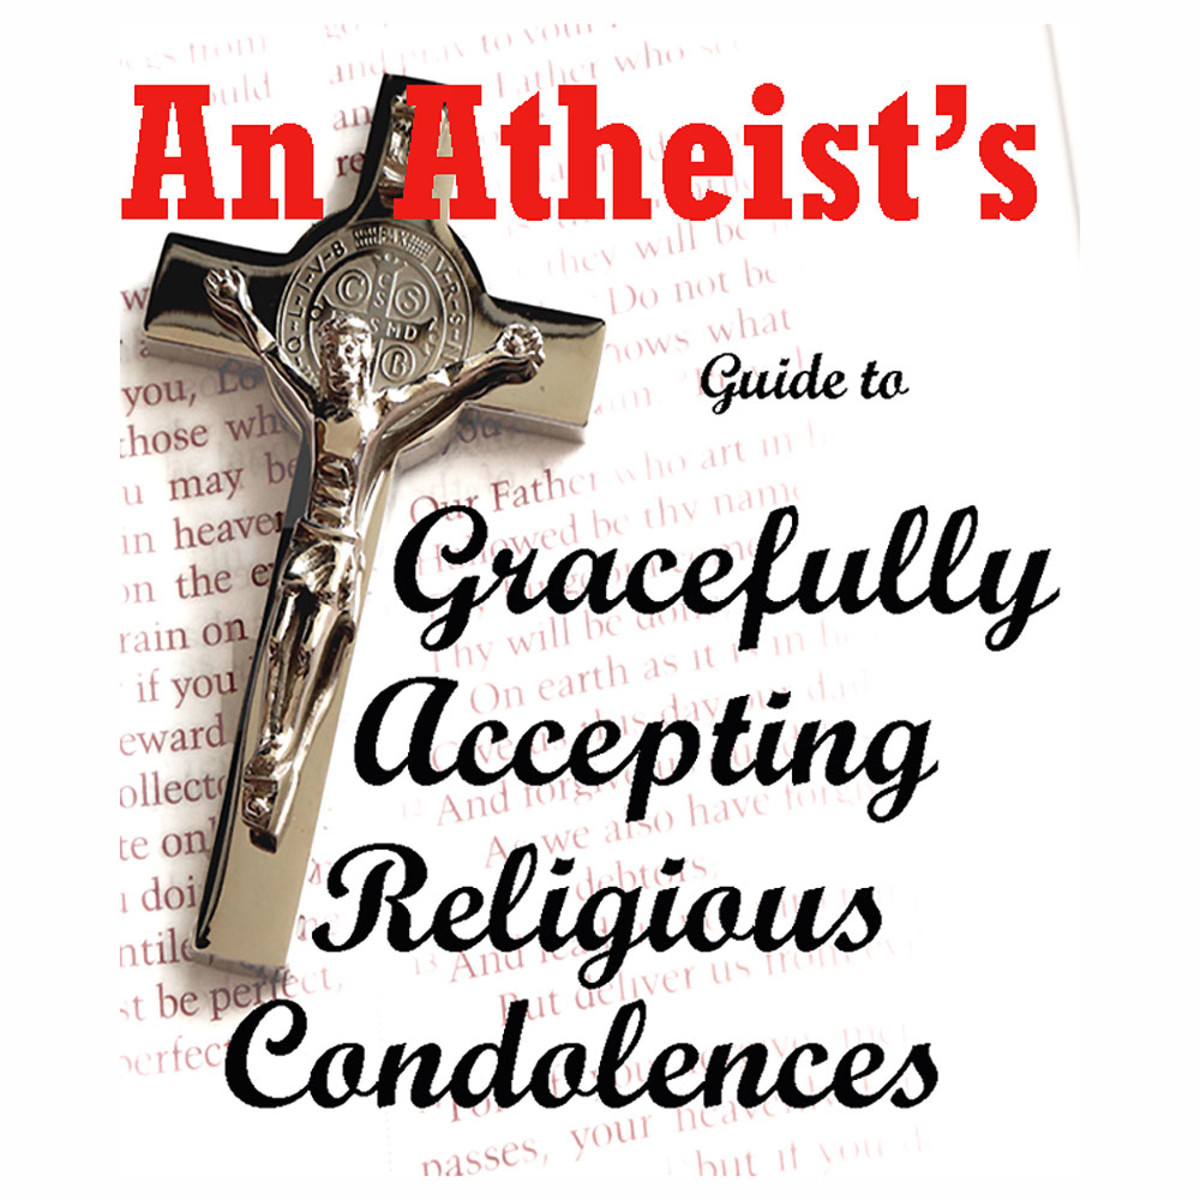 Accepting Religious Condolences as an Atheist